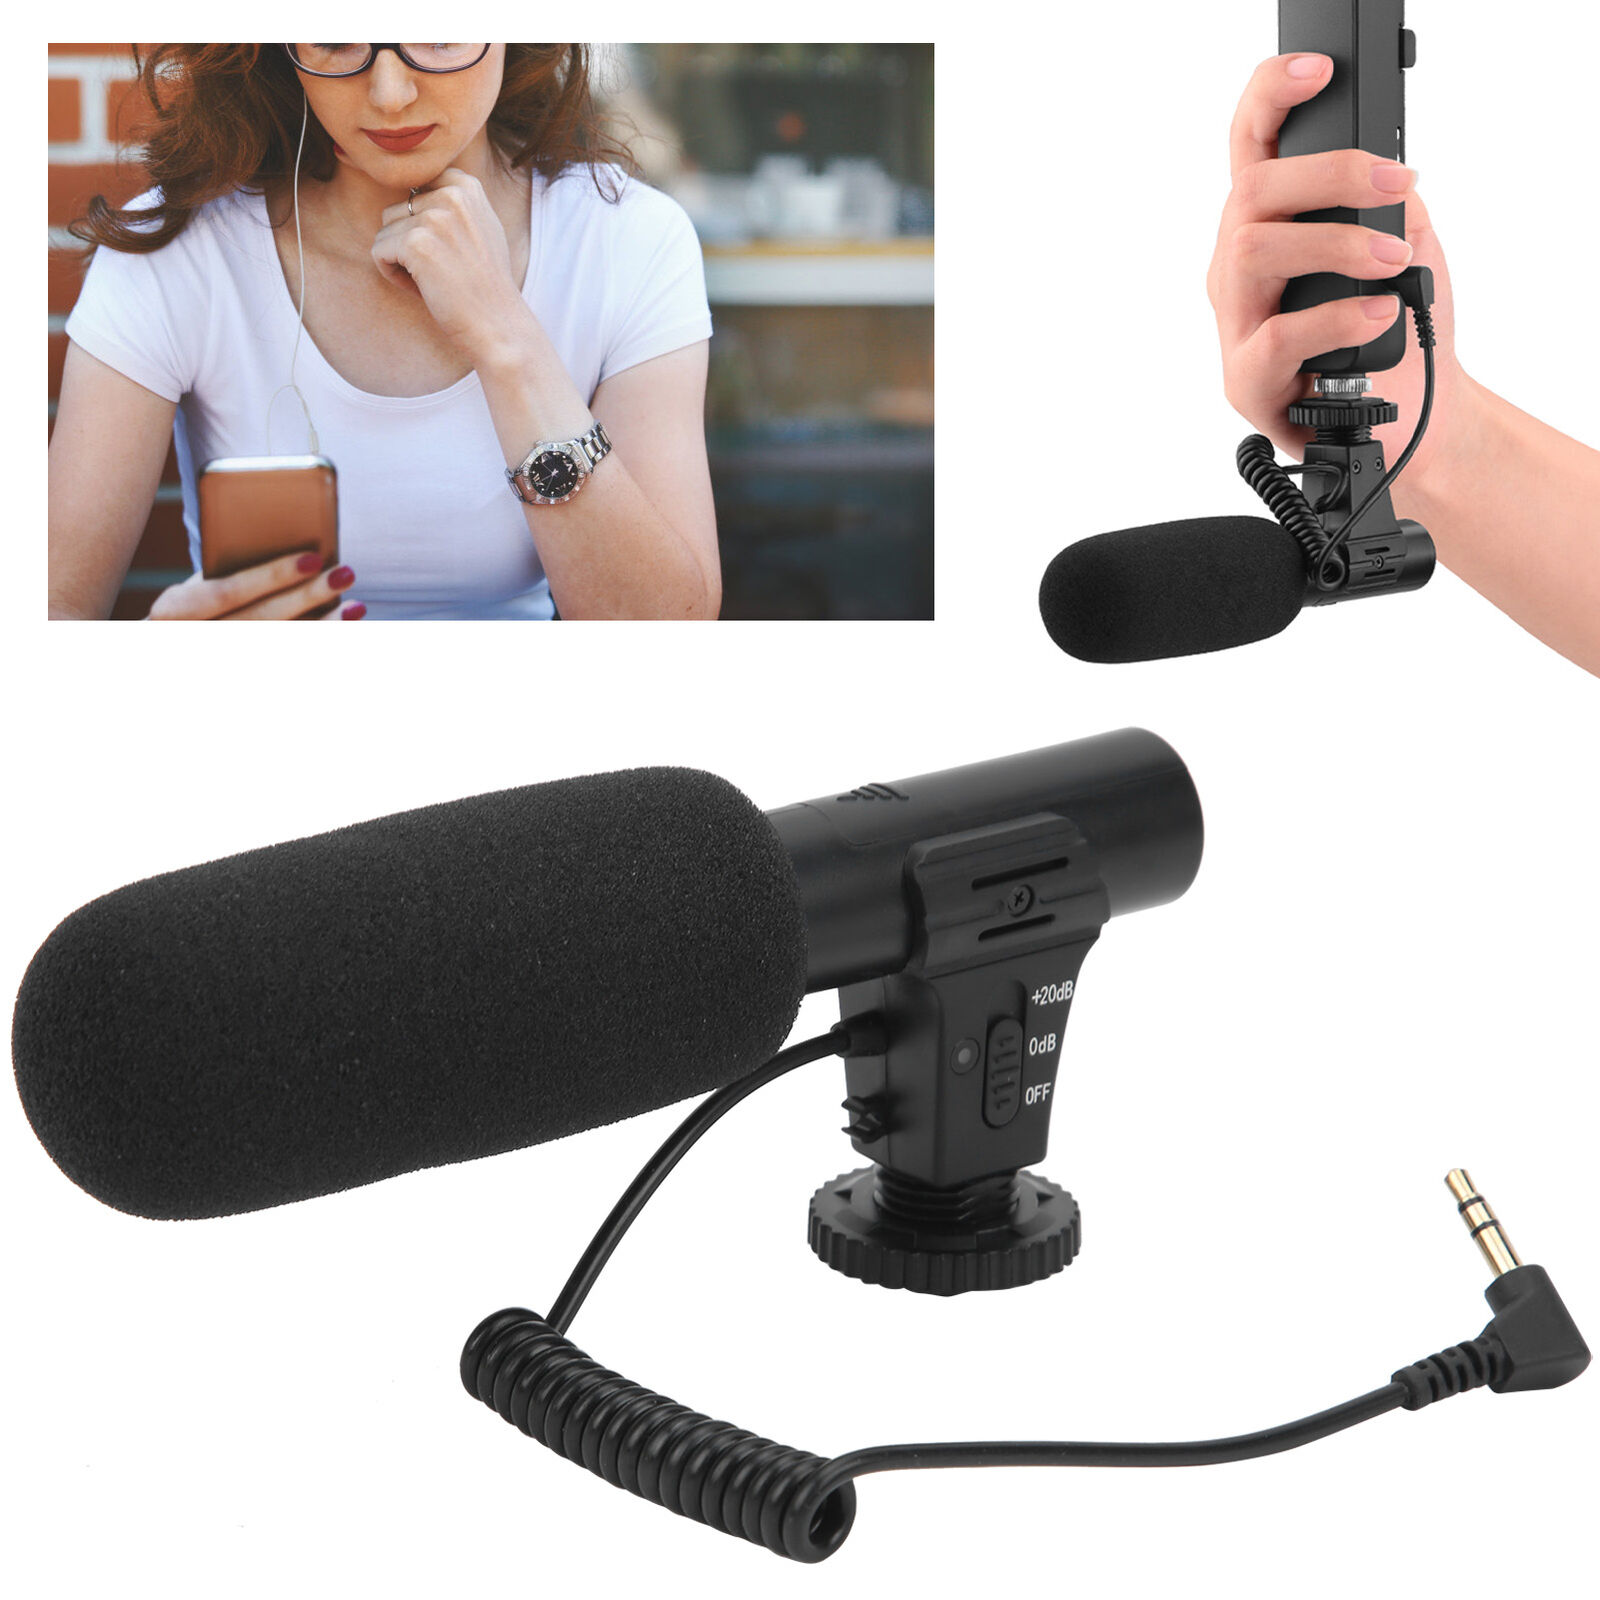 3.5mm Stereo Condenser Microphone Recording With Cold Shoe for DJI OSMO POCKET 2